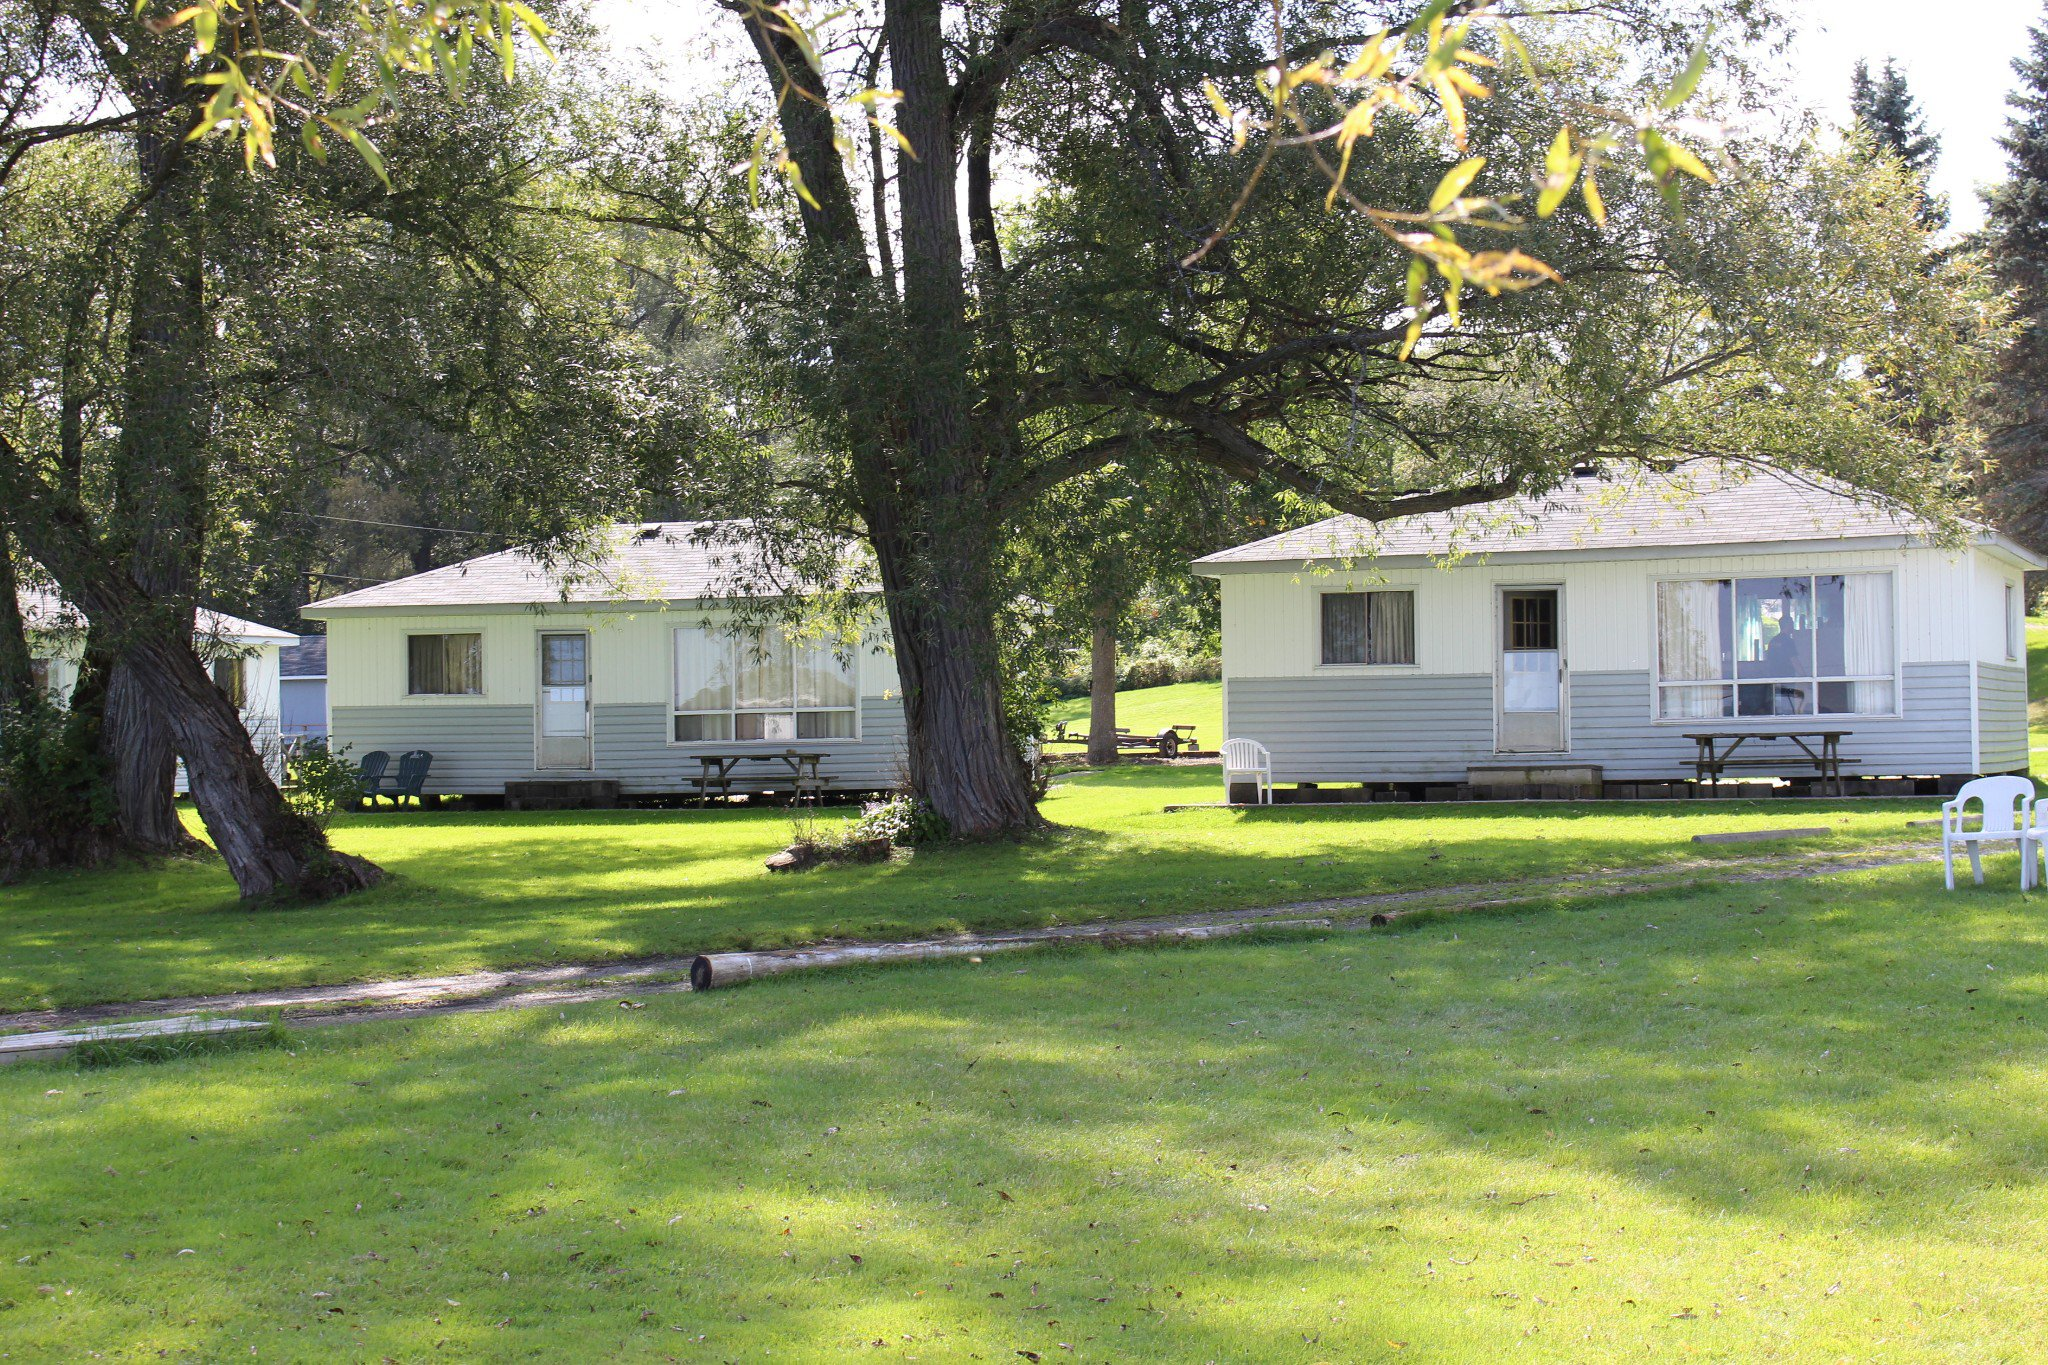 Photo 21: Photos: 6010 Rice Lake Scenic Drive in Harwood: Other for sale : MLS®# 223405